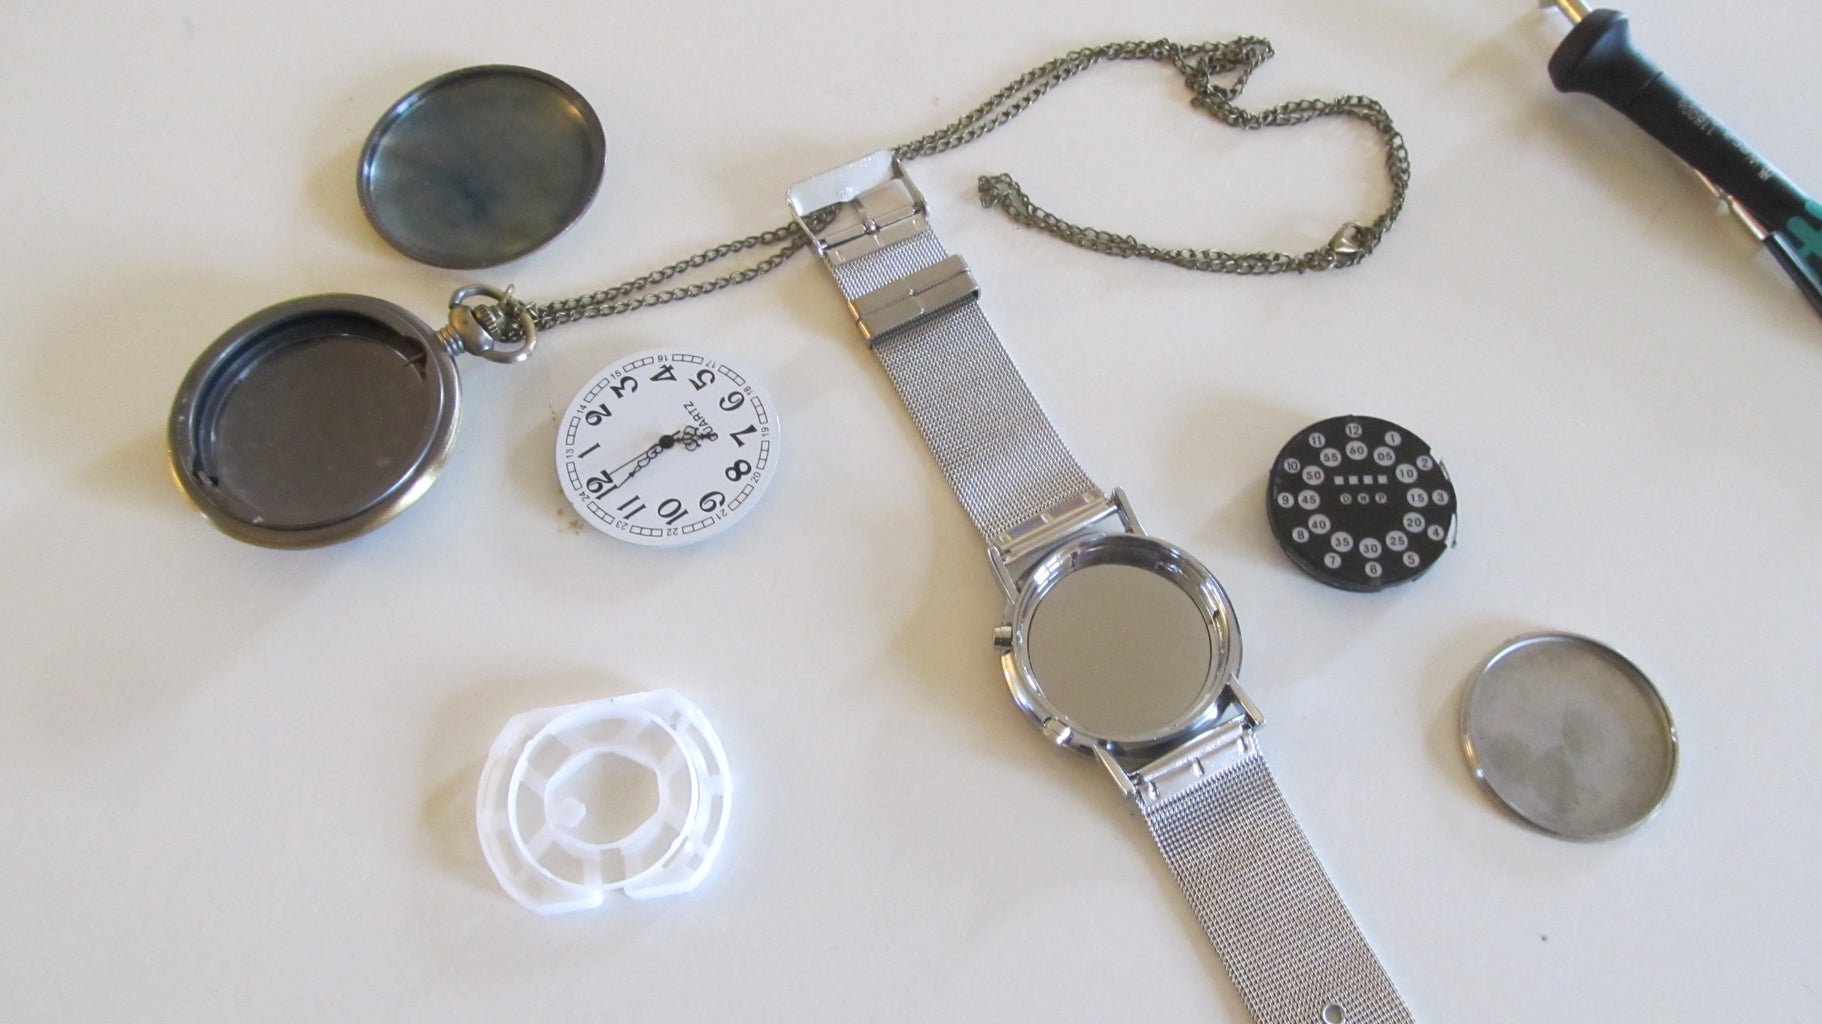 Preparing the Watches